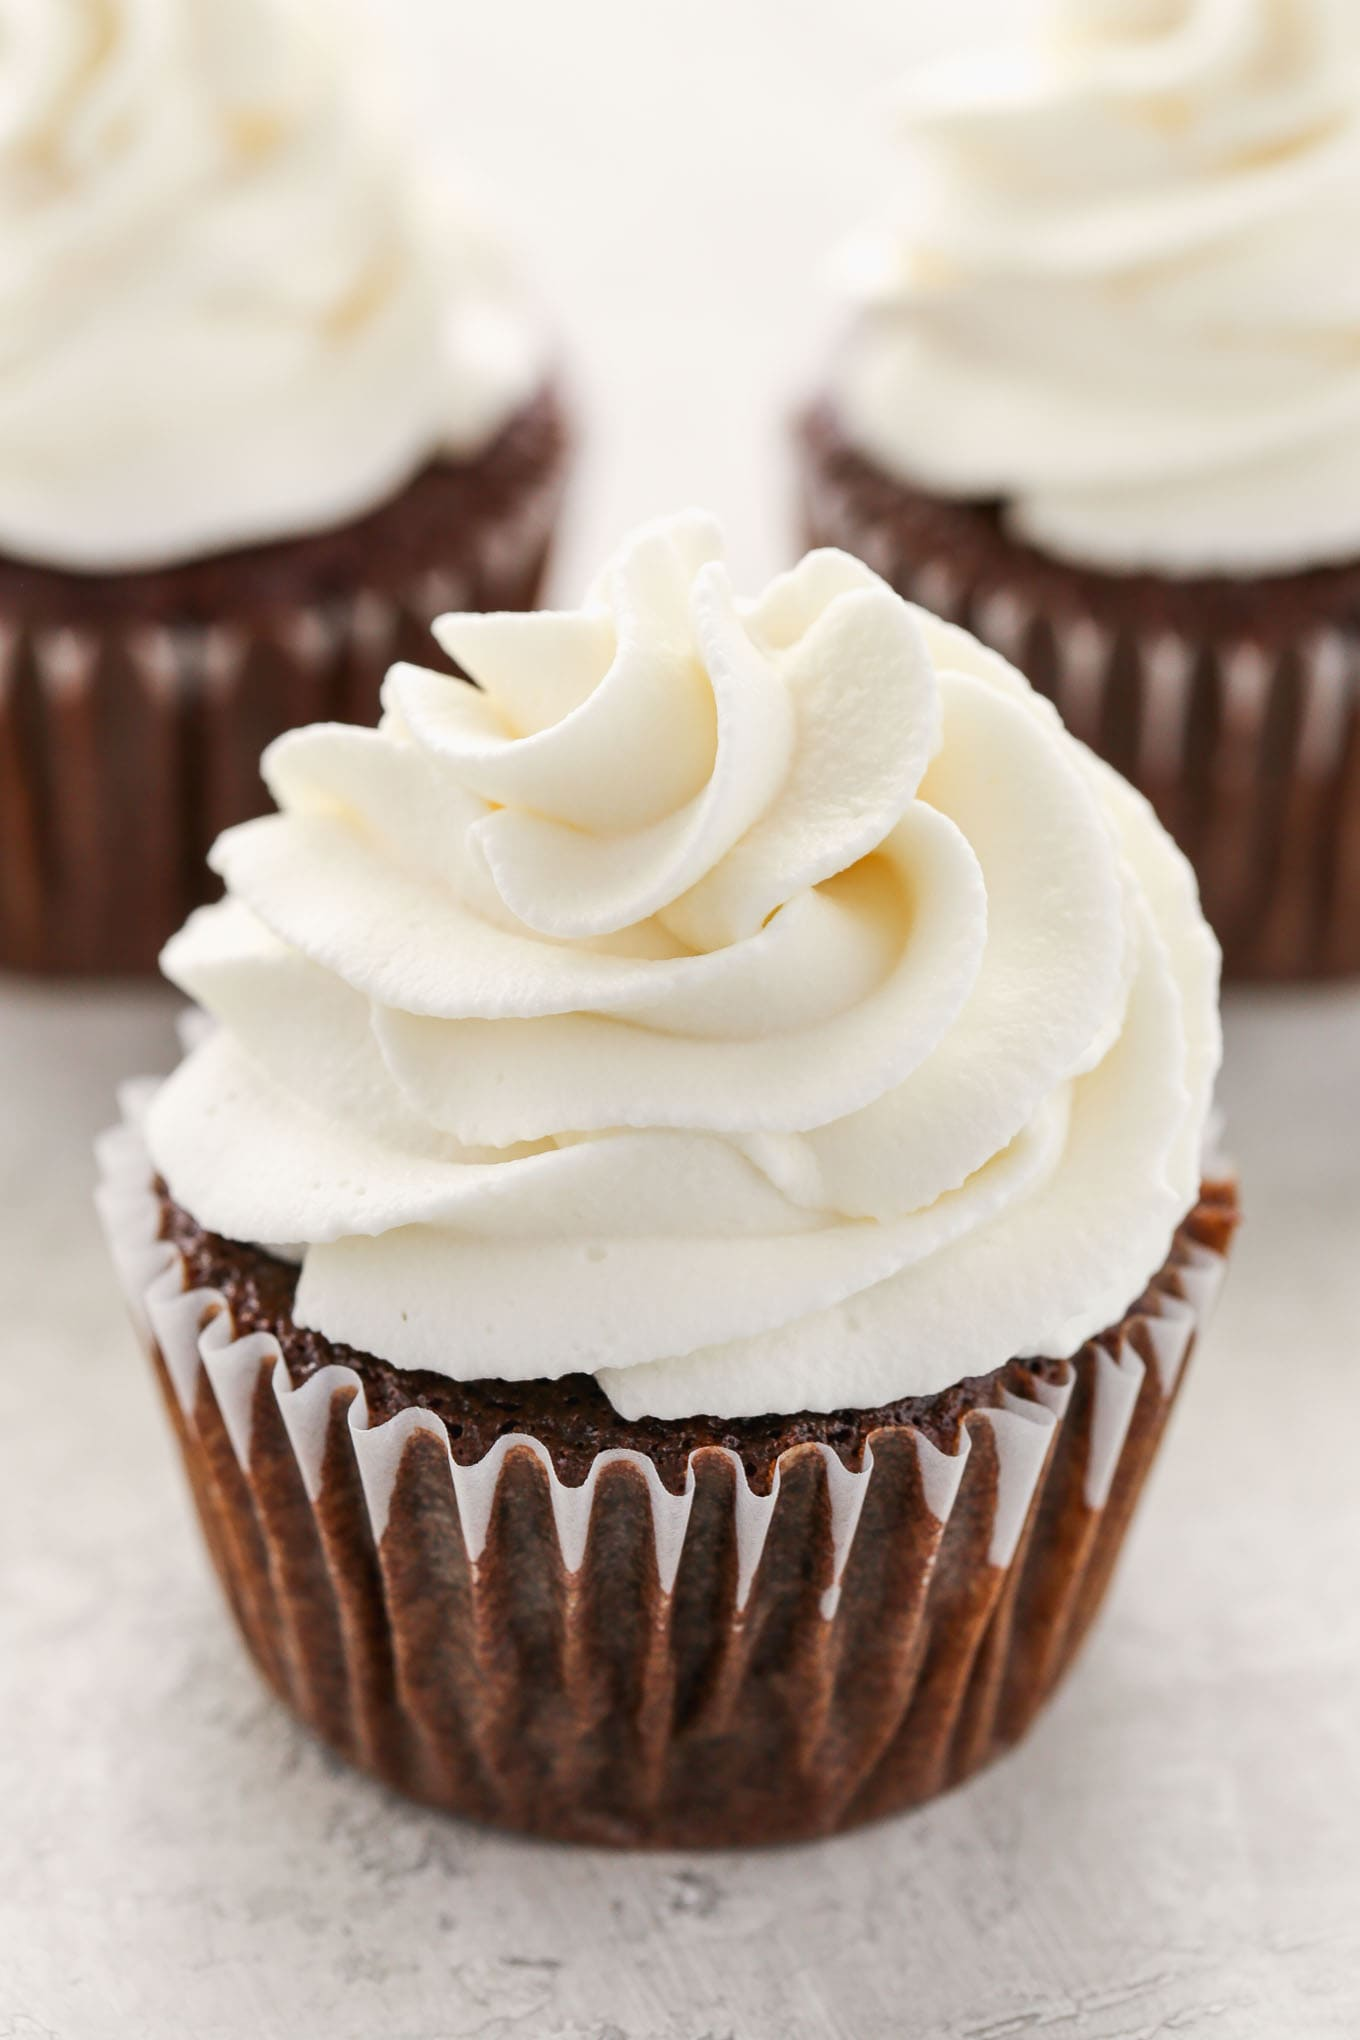 How to make stiff whipped cream icing